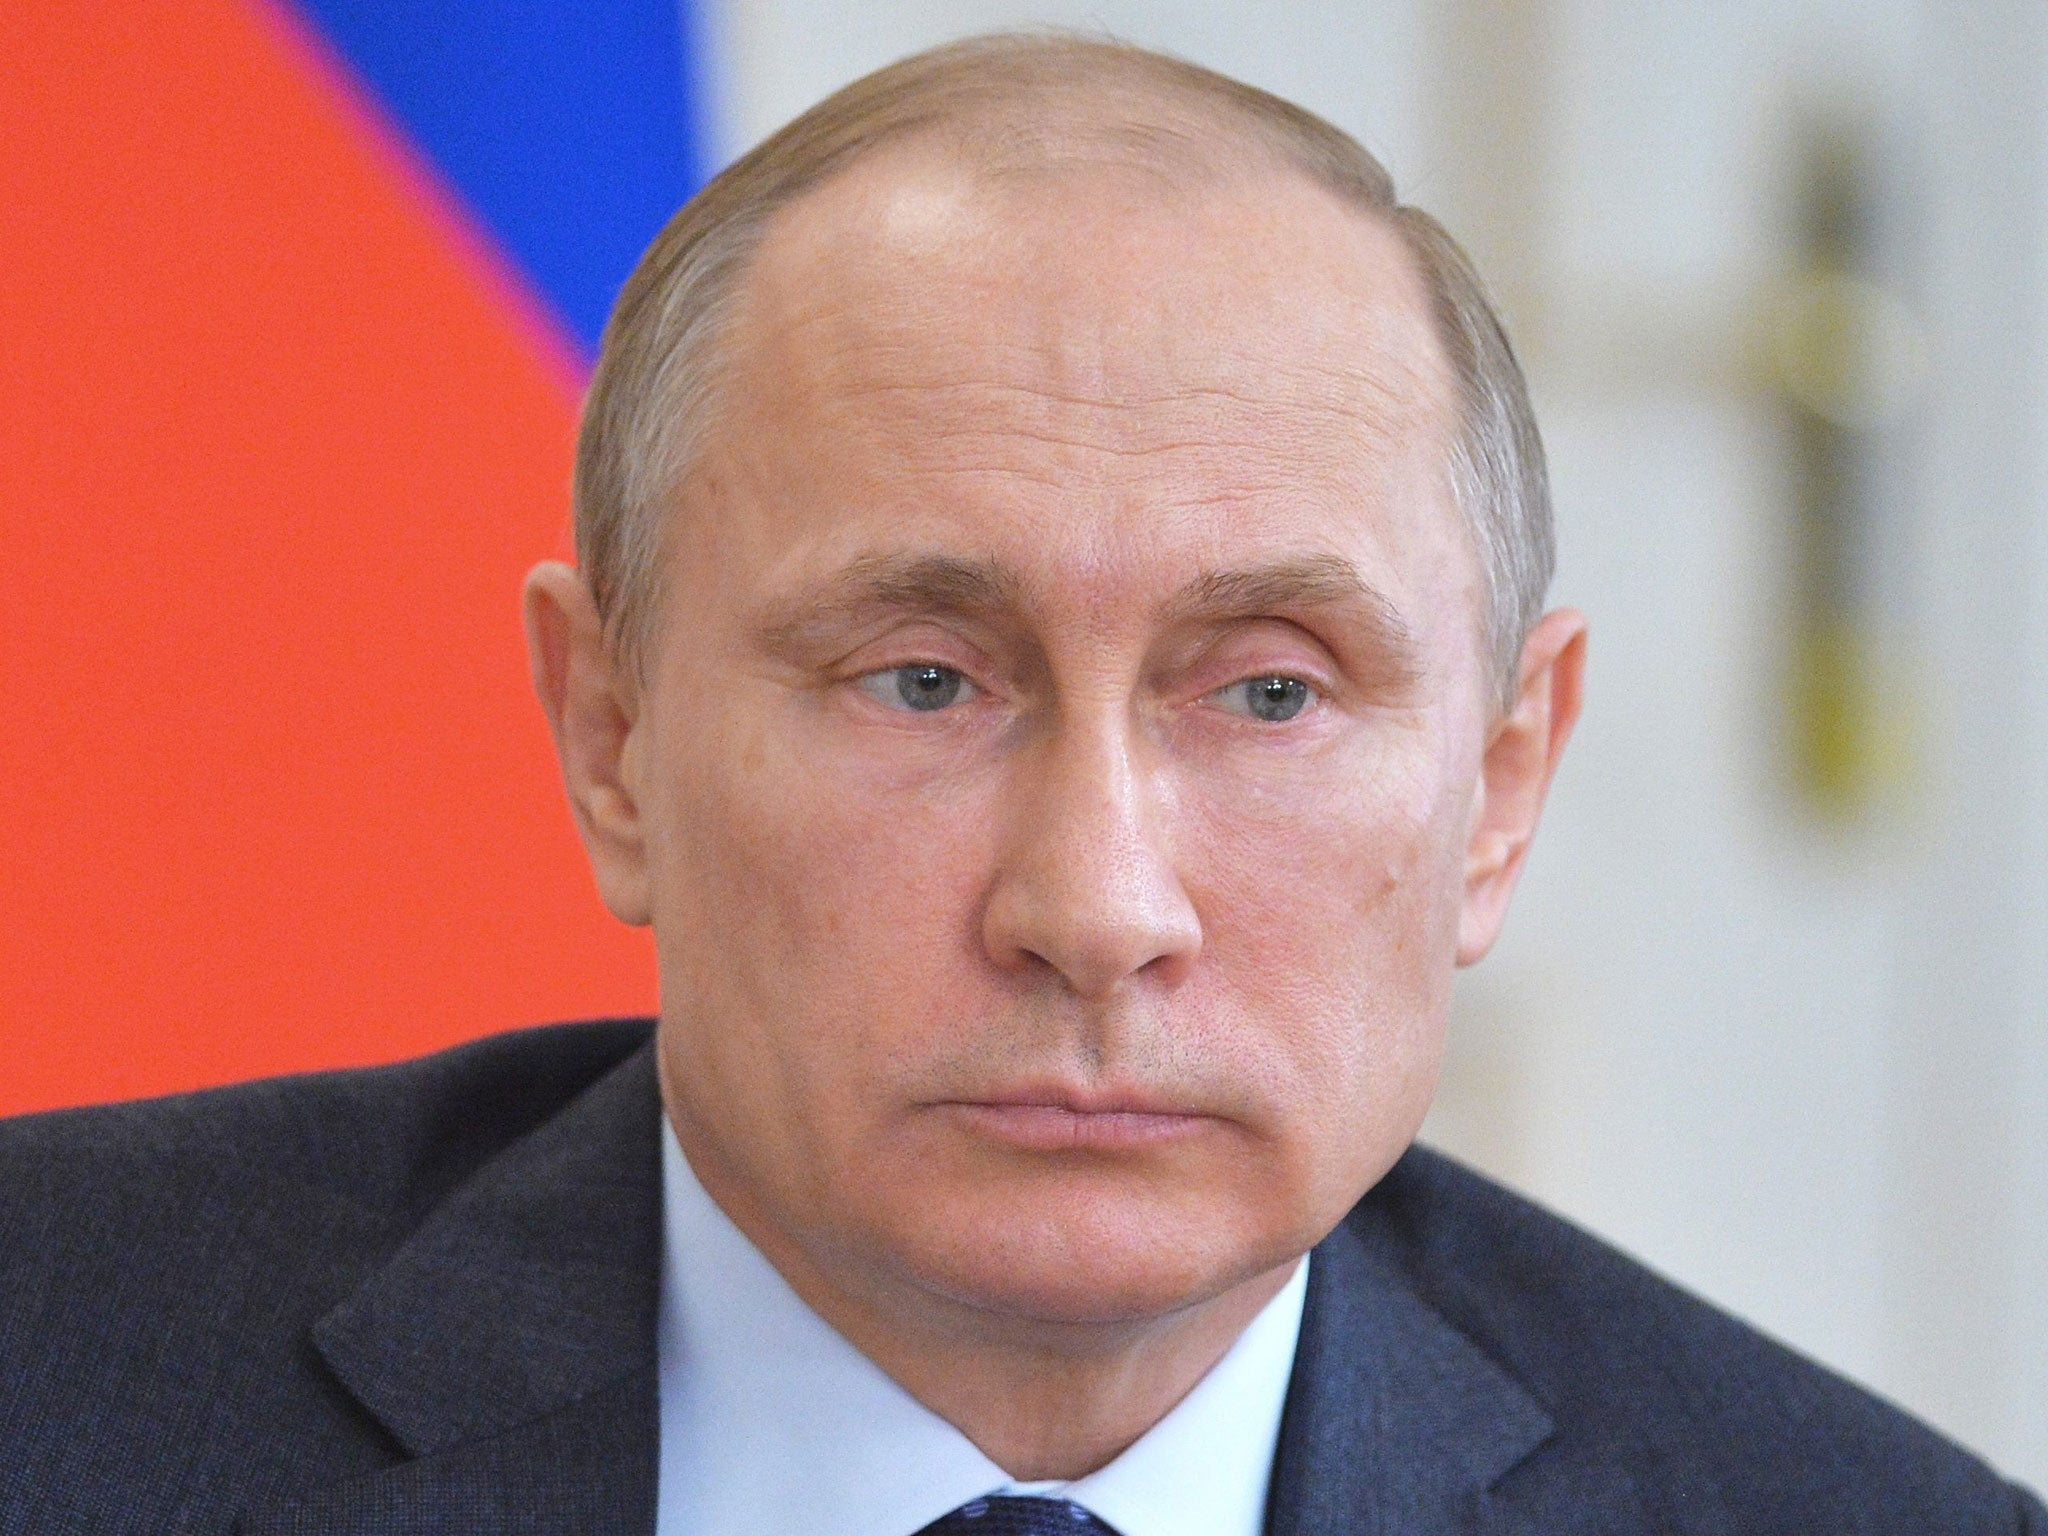 vladimir putin says russia will fight for the right of palestinians to